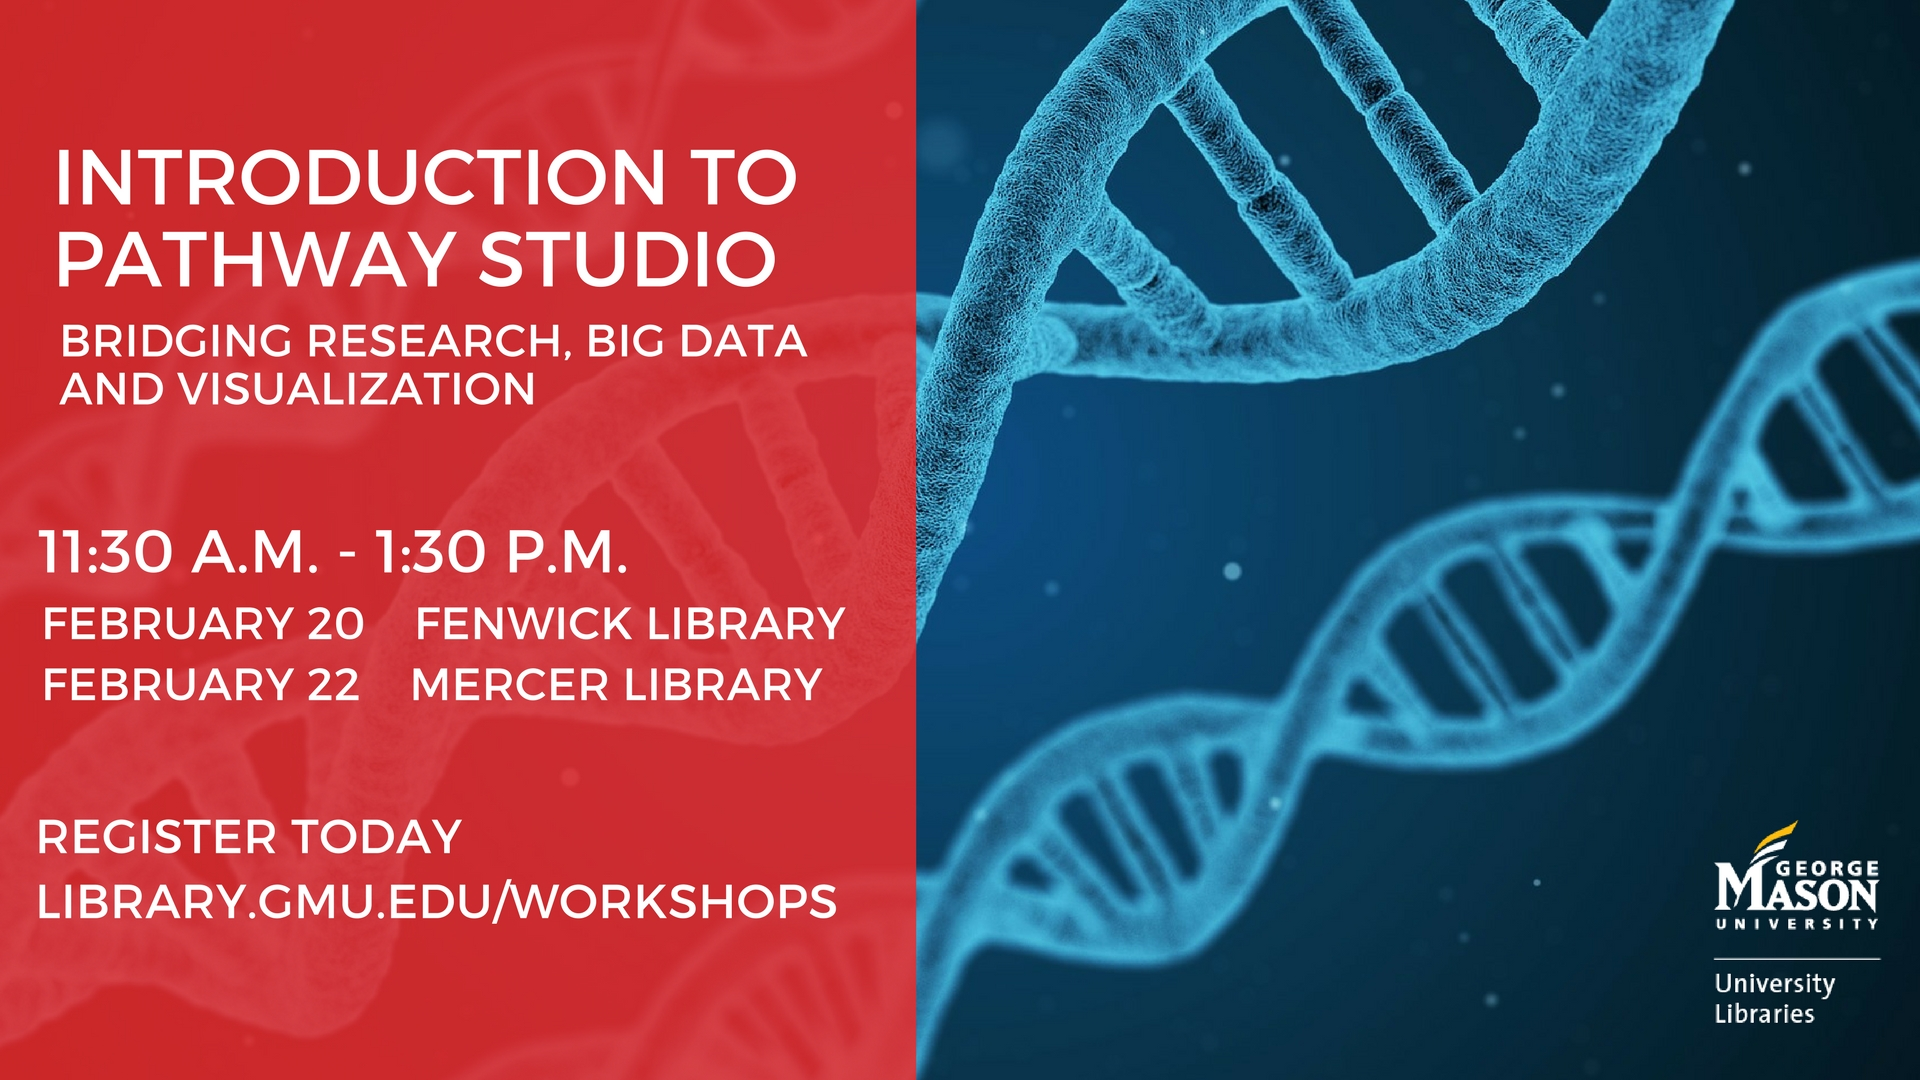 Introduction to Pathway Studio: Bridging Research, Big Data, and Visualization